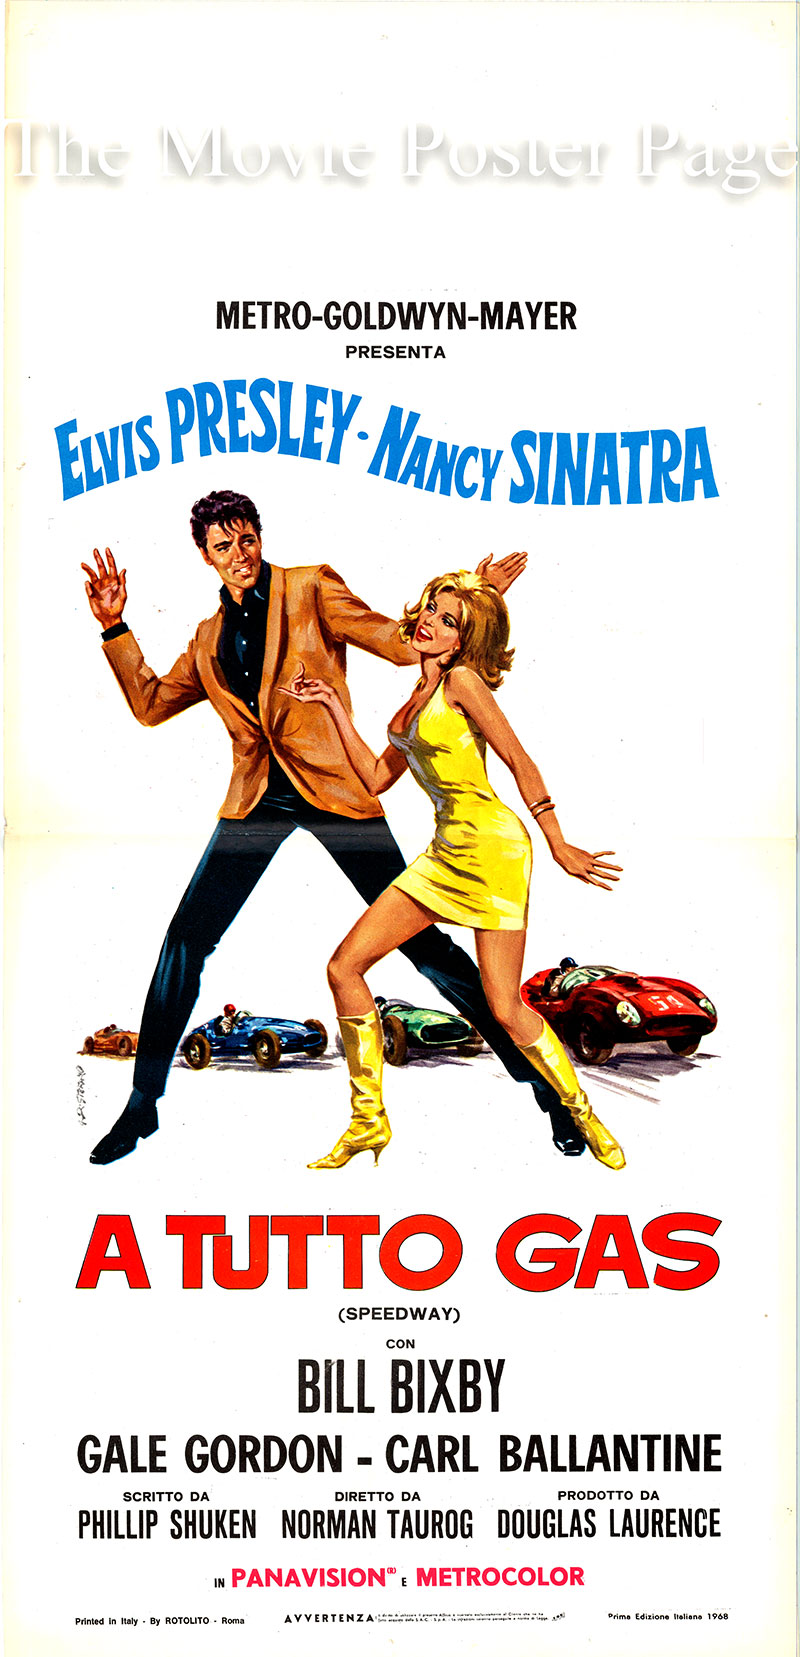 Pictured is an Italian locandina poster for the 1968 Norman Taurog film Speedway written by Phil Shuken and starring Elvis Presley as Steve Grayson.